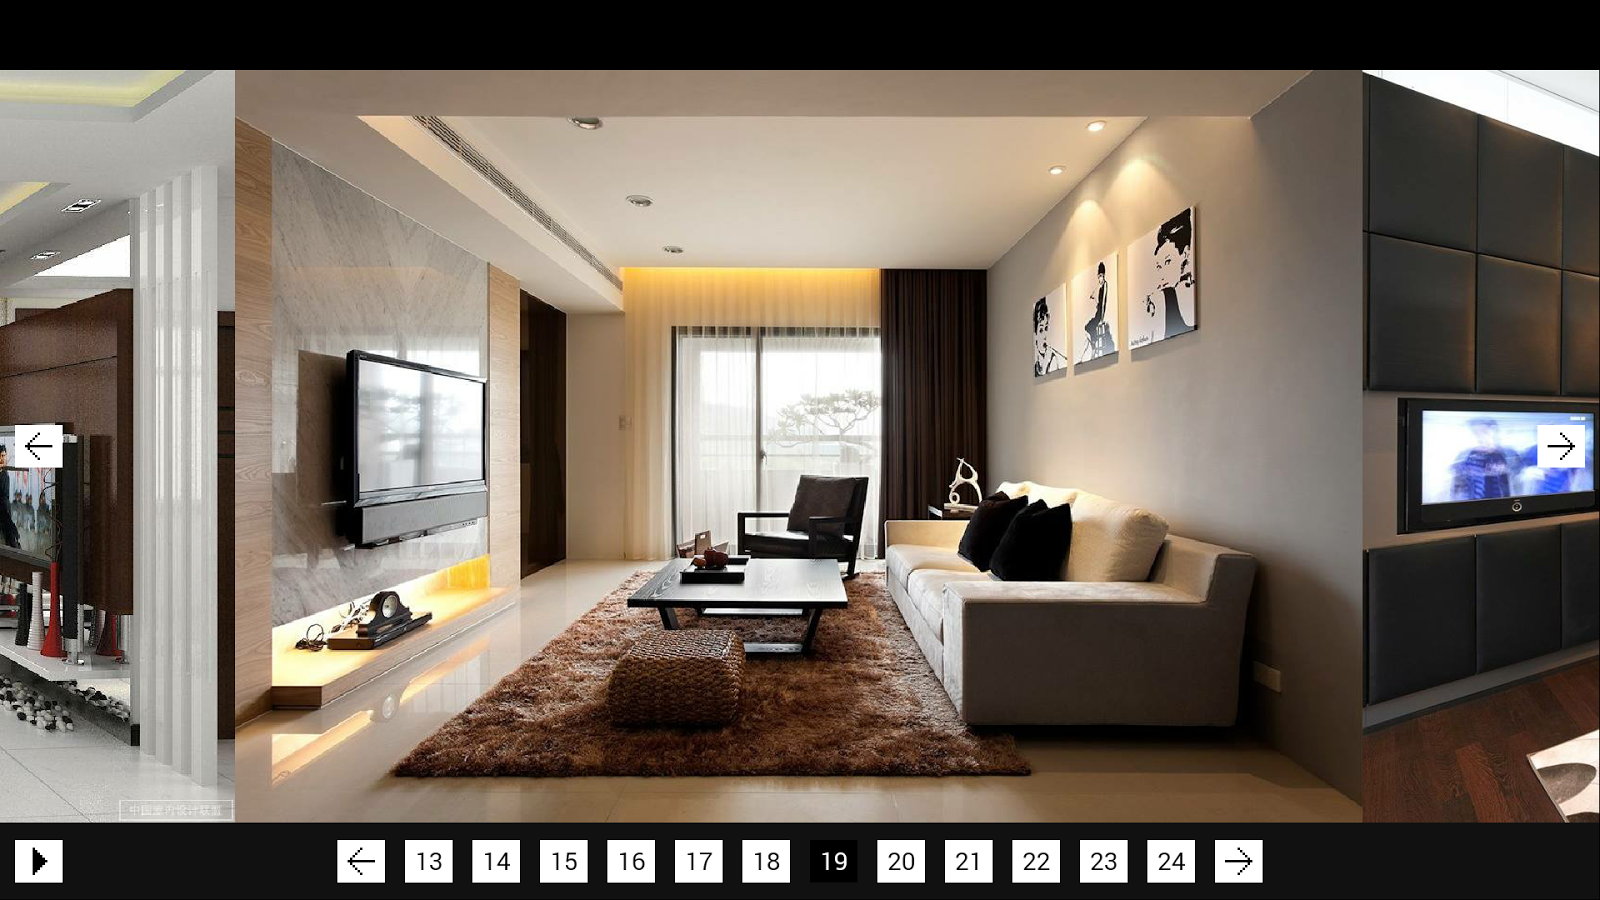 Home interior design android apps on google play for Home design ideas interior